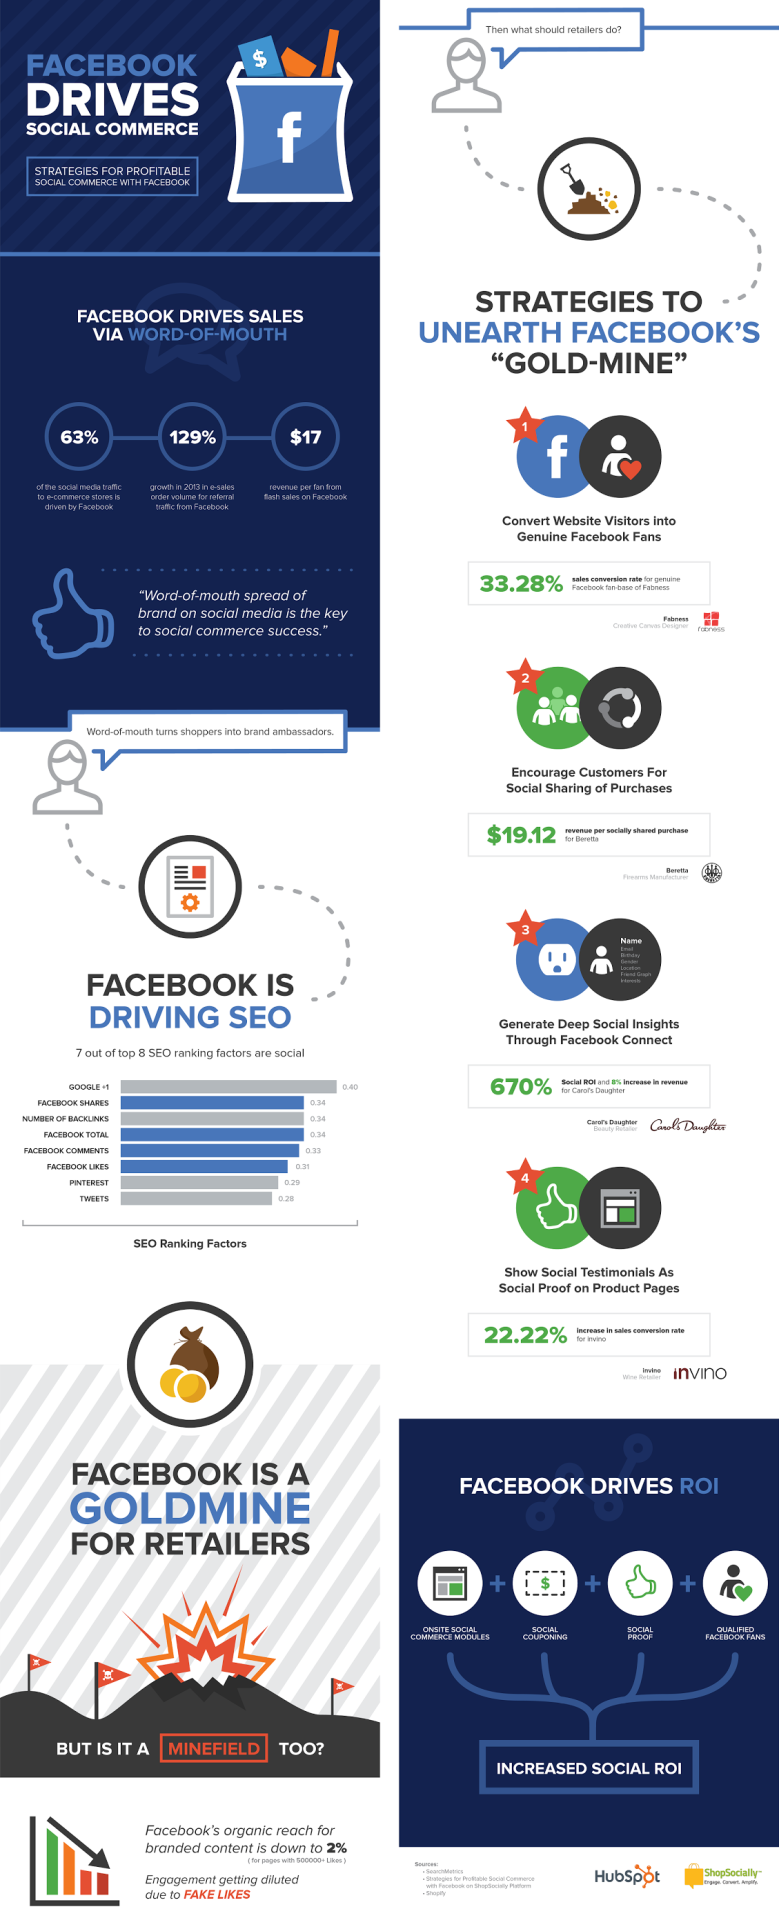 Strategies for Profitable #Social #Commerce with #Facebook | http://www.pinterest.com/pin/160159330473096961/ | #Tech #SMM #Infographic ▼ Reshared Post From Irfan Ahmad ▼ How to Turn Customers Into Brand Promoters on Facebook To enlarge image: i.imgur.com/c7HR9NC.png Facebook has been a goldmine for marketers and businesses, however, in past few months, Facebook's organic reach for branded content is down to 2 percent which made it quite difficult for brands to reap the same marketing benefits. So what should retailers do? Here's an infographic from +HubSpot  and +ShopSocially offering some tips and solution for generating positive return-on-investment from Facebook. Pin it: http://www.pinterest.com/pin/381539399654517973/ Source: http://blog.hubspot.com/marketing/turn-customers-into-promoters-facebook-infographic http://click-to-read-mo.re/p/7sUk/53413f12